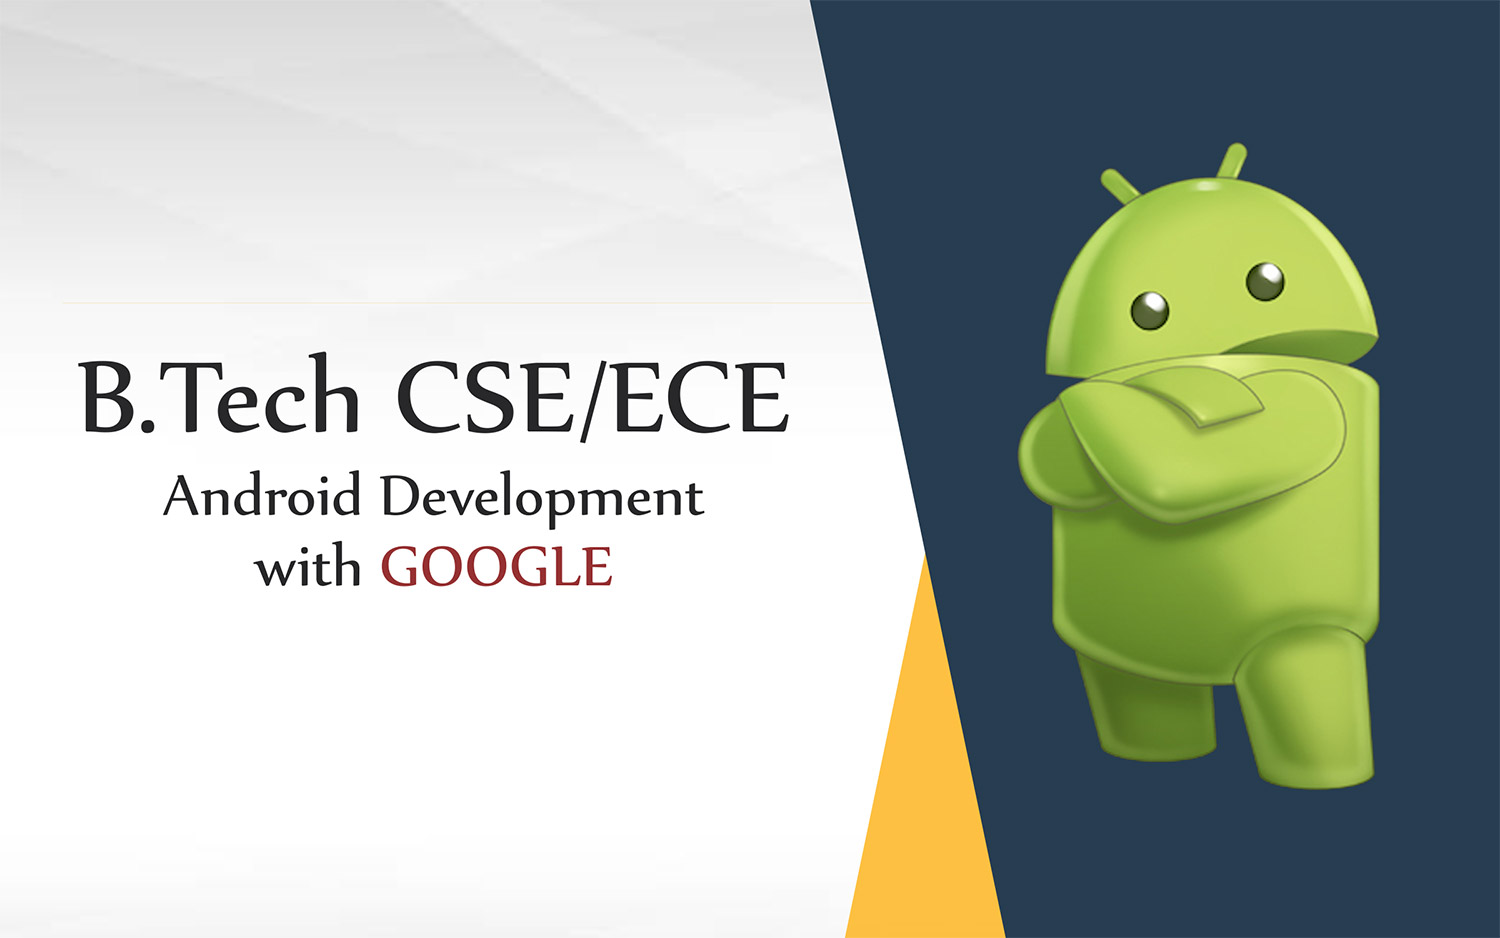 B.Tech CSE/ECE Android Development with Google